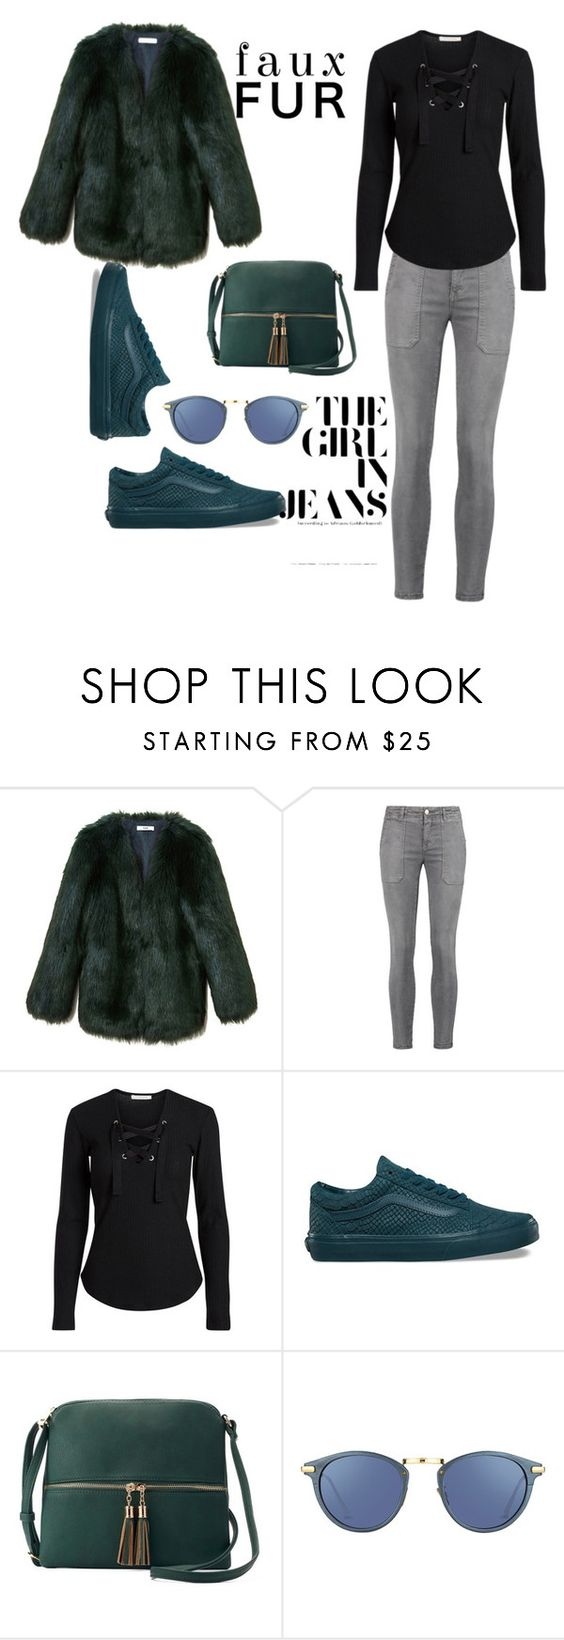 """""""Untitled #13"""" by starbuckssweetie ❤ liked on Polyvore featuring THP, Current/Elliott, Vans, Deluxity and Linda Farrow"""